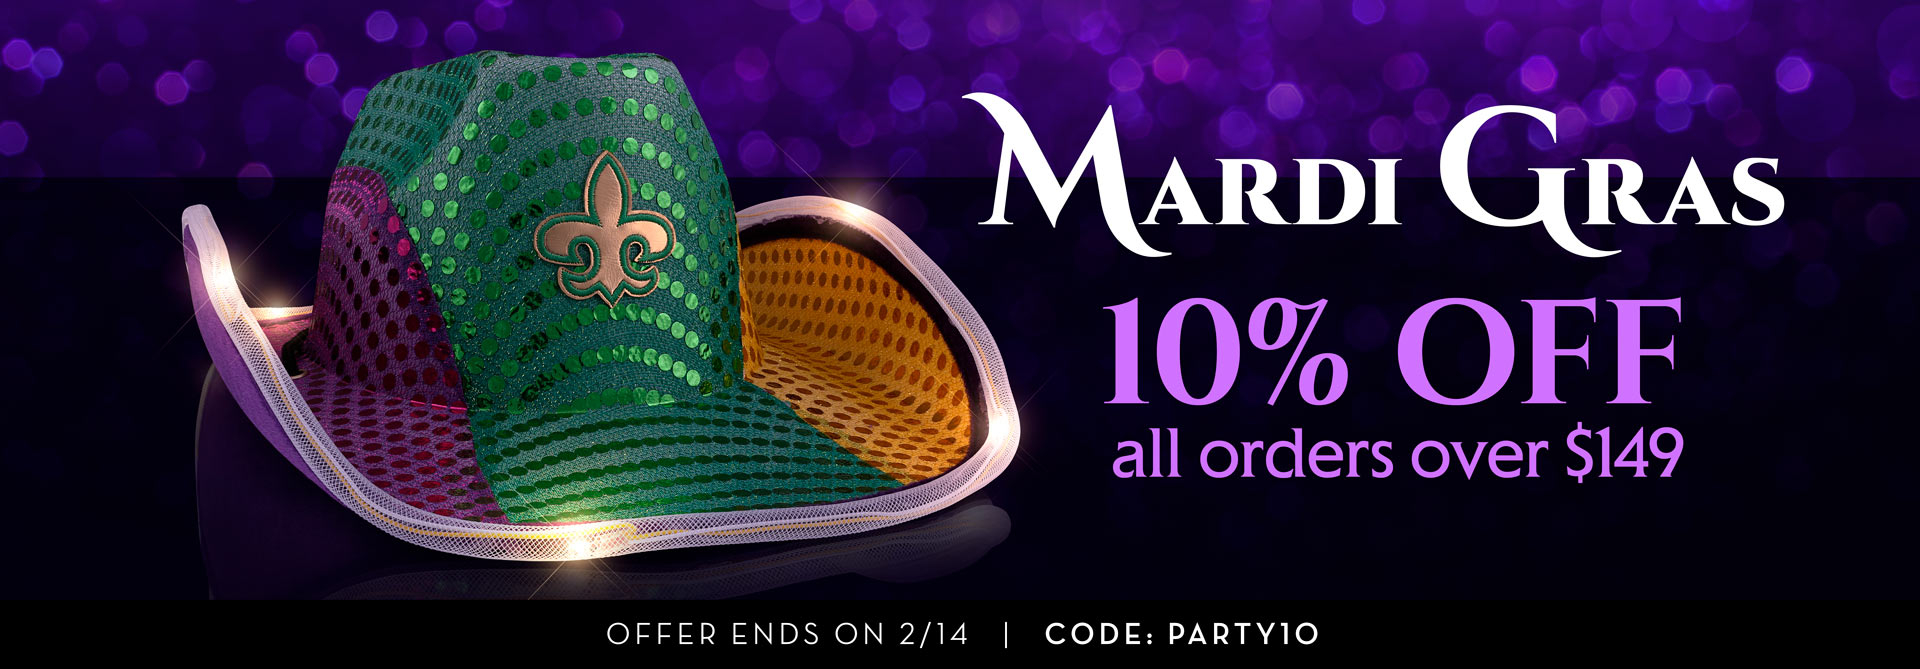 Mardi Gras Themed Promotional Offer